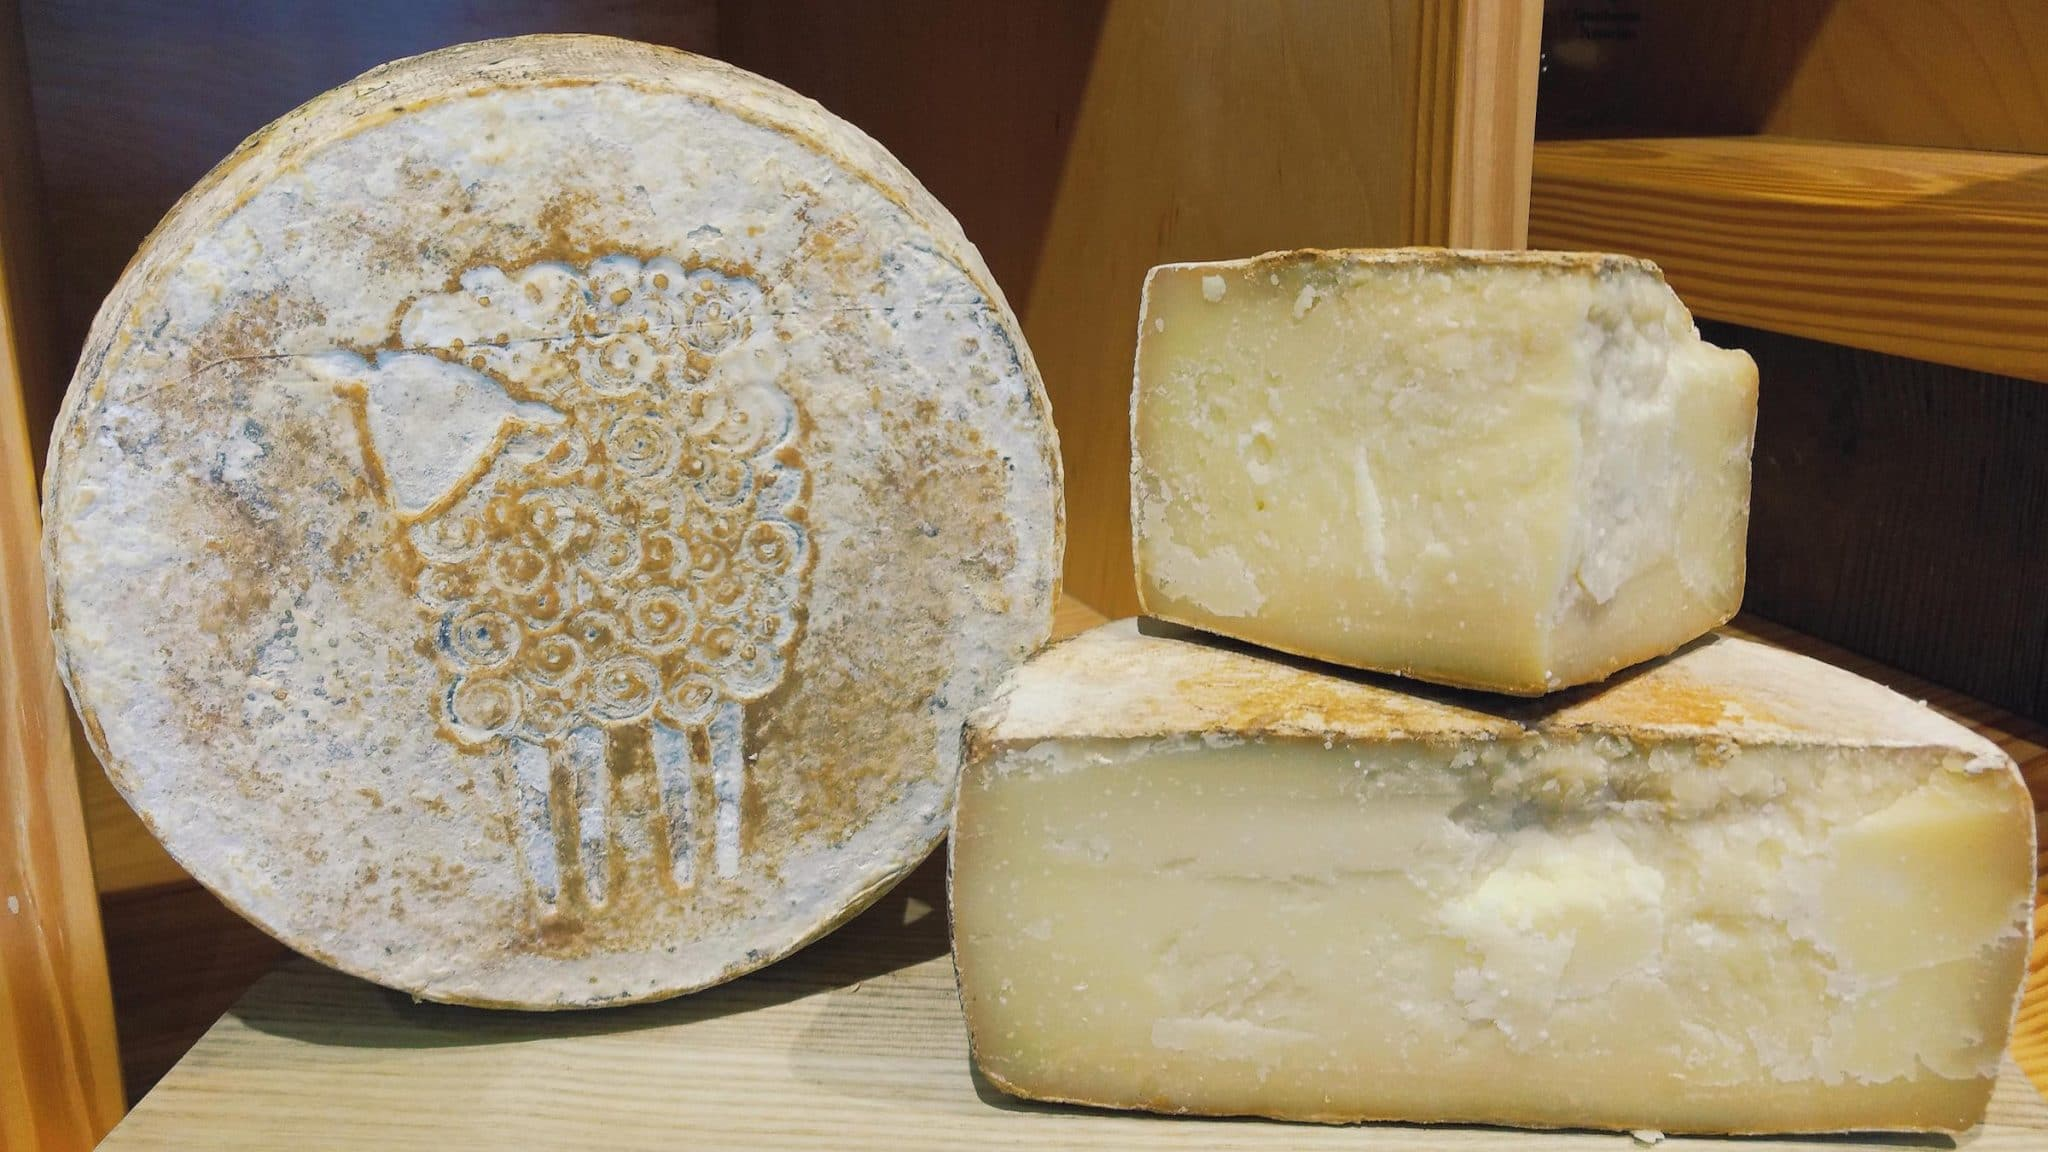 Whole wheel of Prairie Tomme Reserve, aged 100% sheep cheese from Green Dirt Farm.